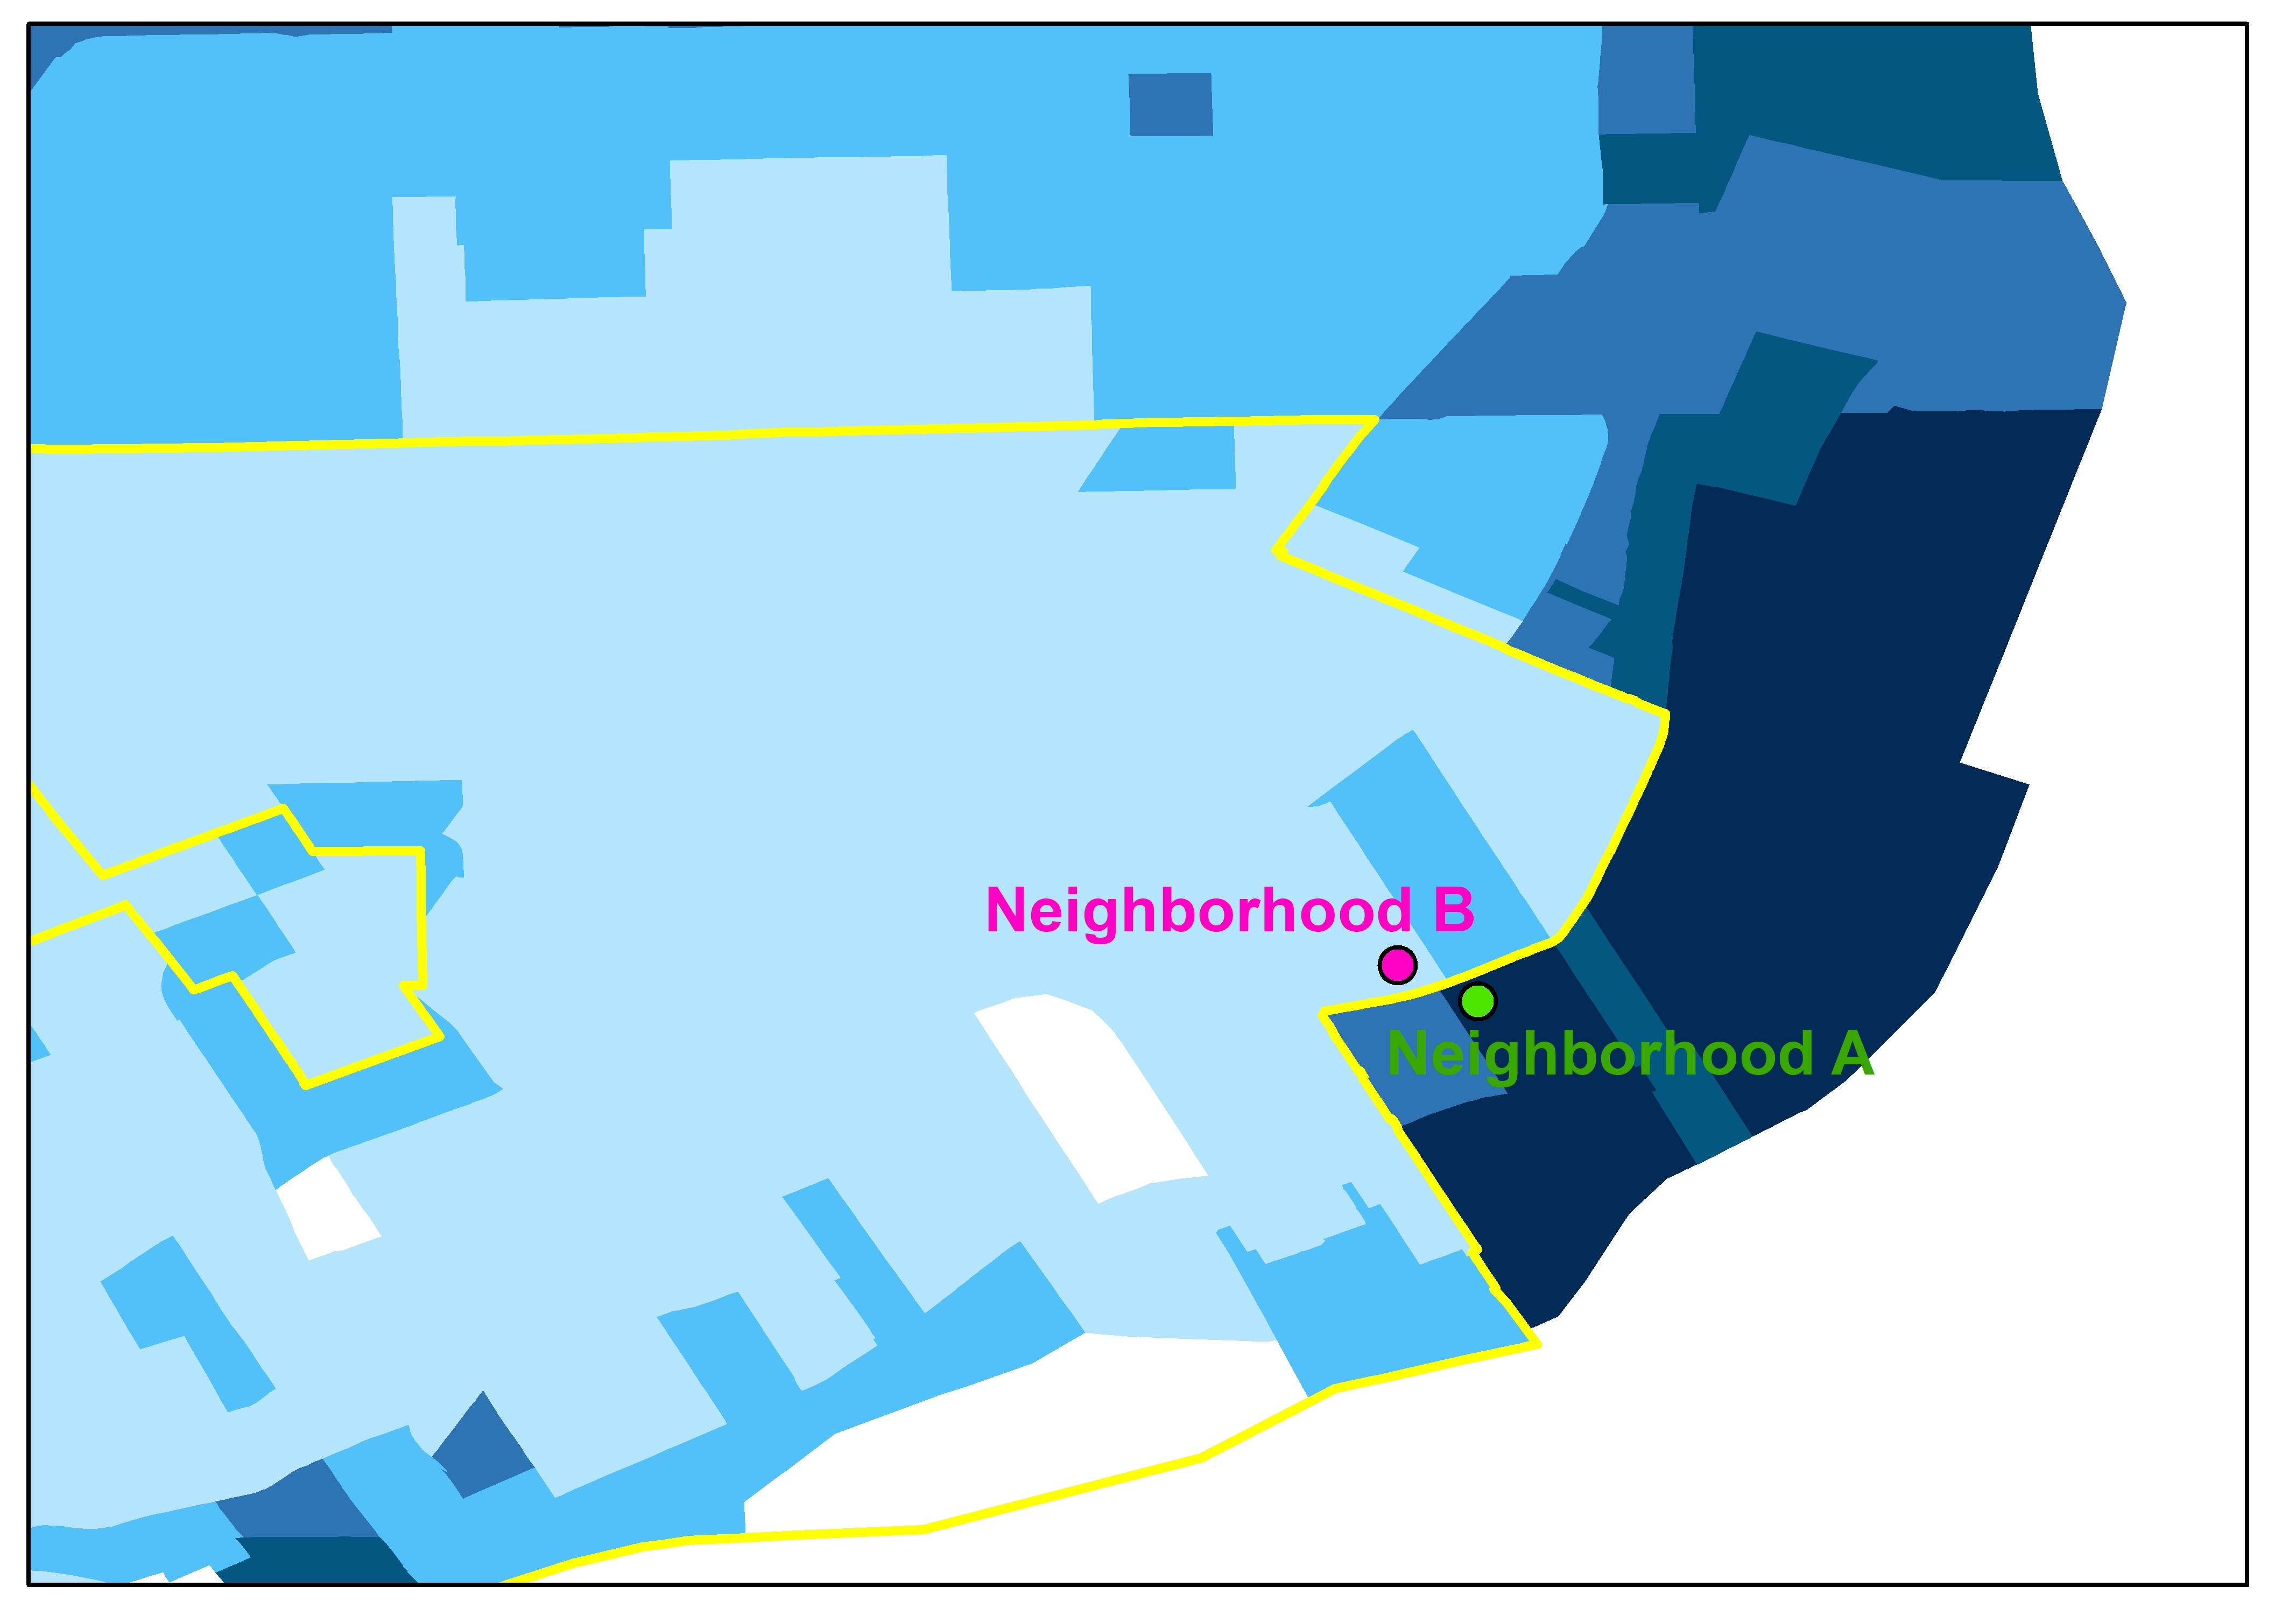 Inset map showing two neighborhoods in Detroit